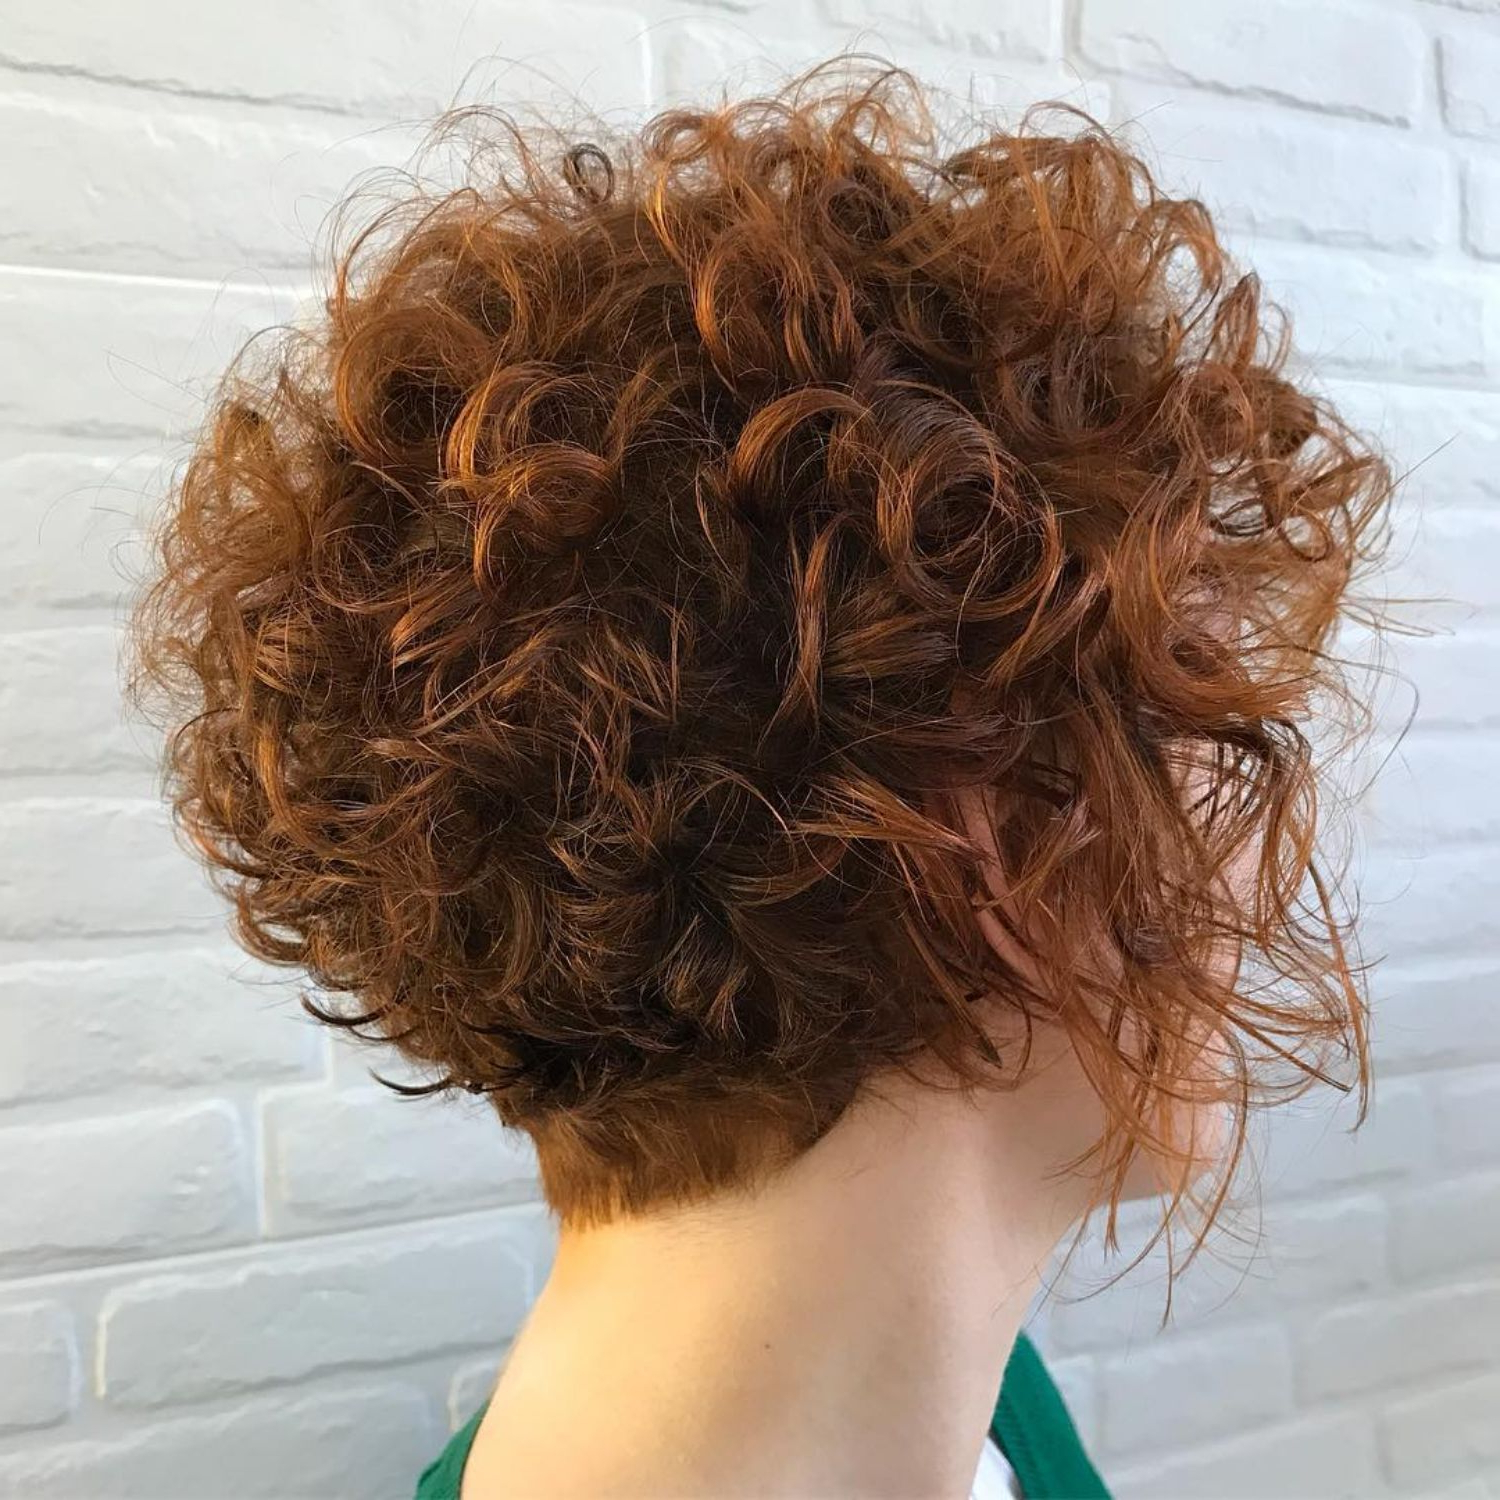 60 Most Delightful Short Wavy Hairstyles In 2018 | Hairstyles Intended For Short Bob Hairstyles With Whipped Curls And Babylights (View 8 of 25)